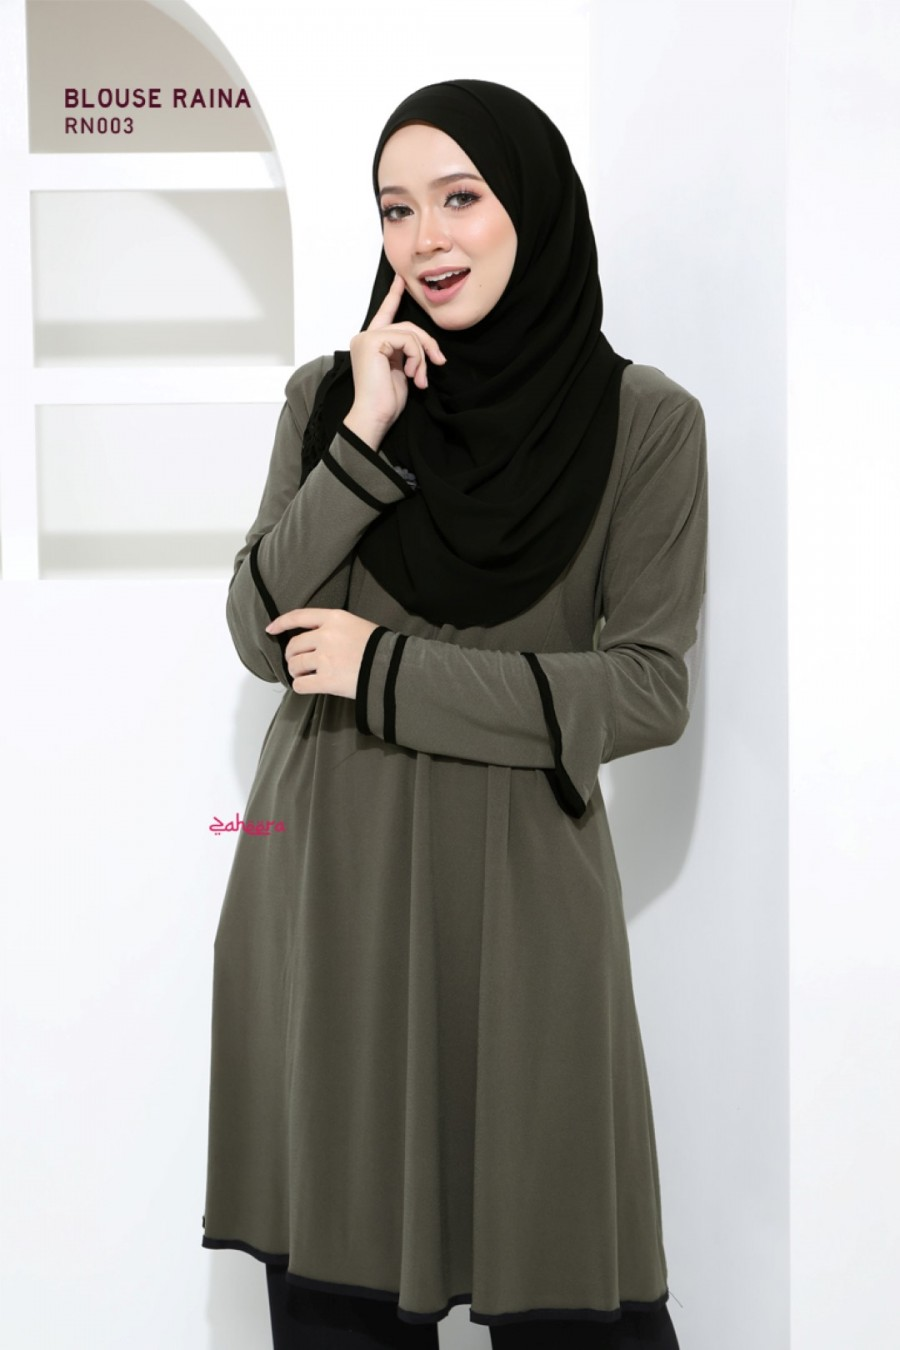 BLOUSE IRONLESS TRAVEL FRIENDLY RAINA RN003 1